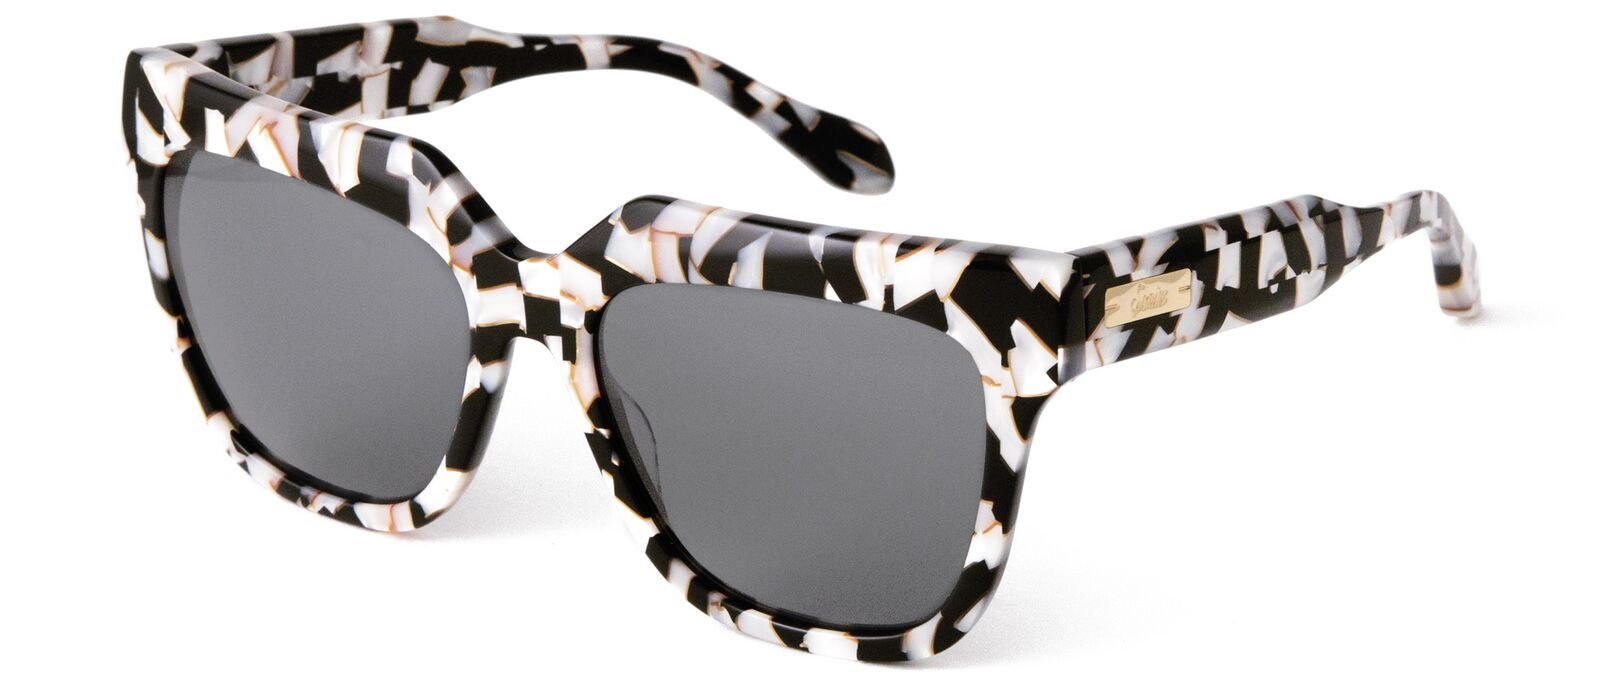 Sonix Women's Avalon Sunglasses, Luxe Marble/Black, One Size by Sonix (Image #2)